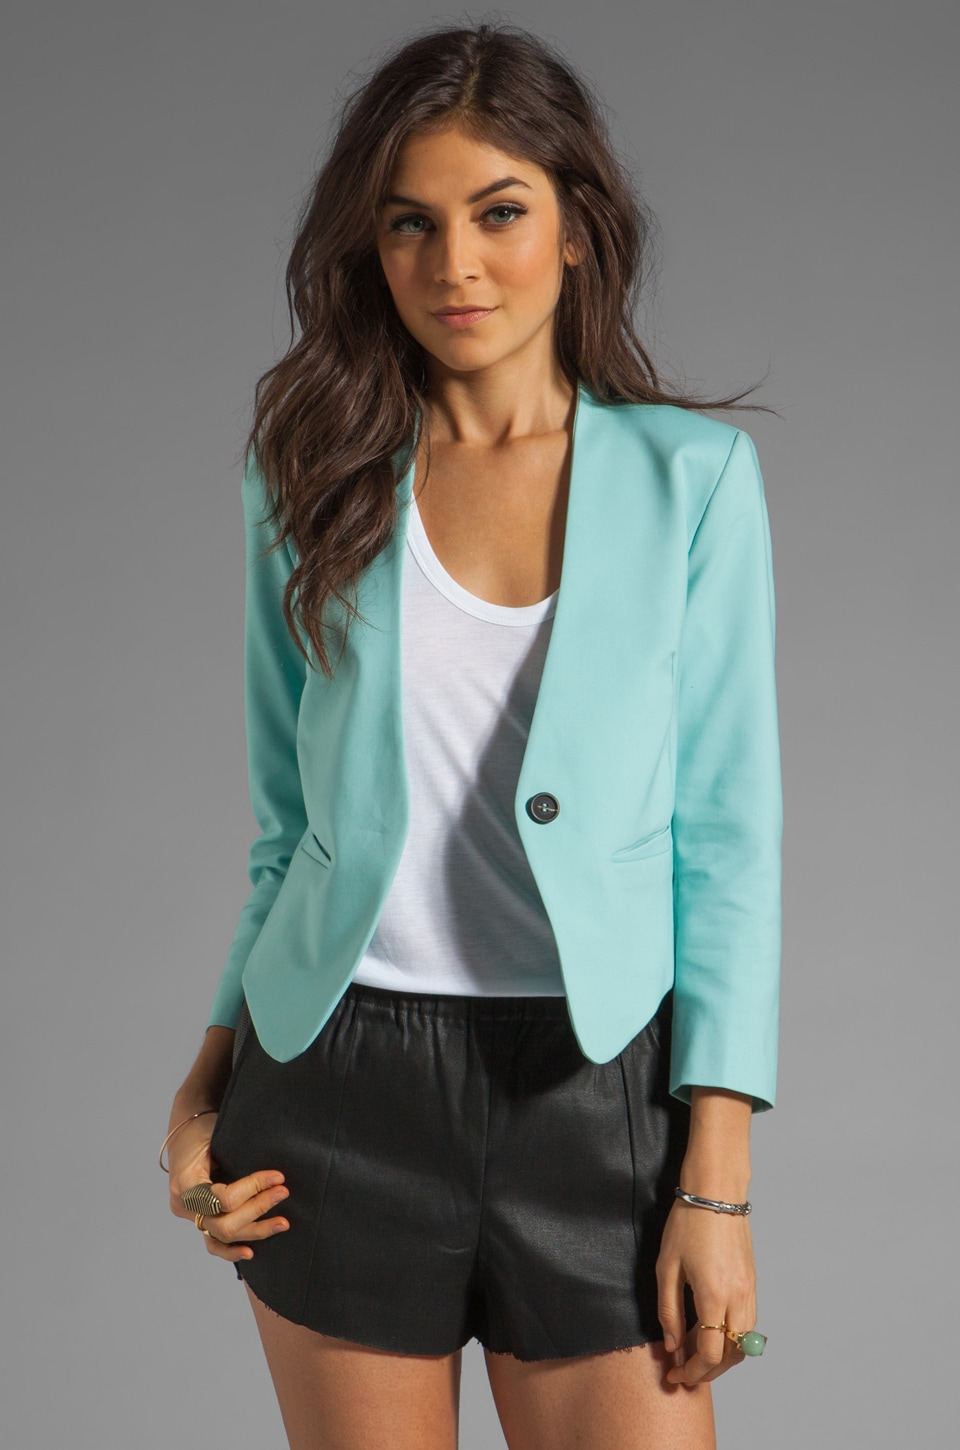 Funktional Hi-Res Curved Blazer in Hi-Res Cyan